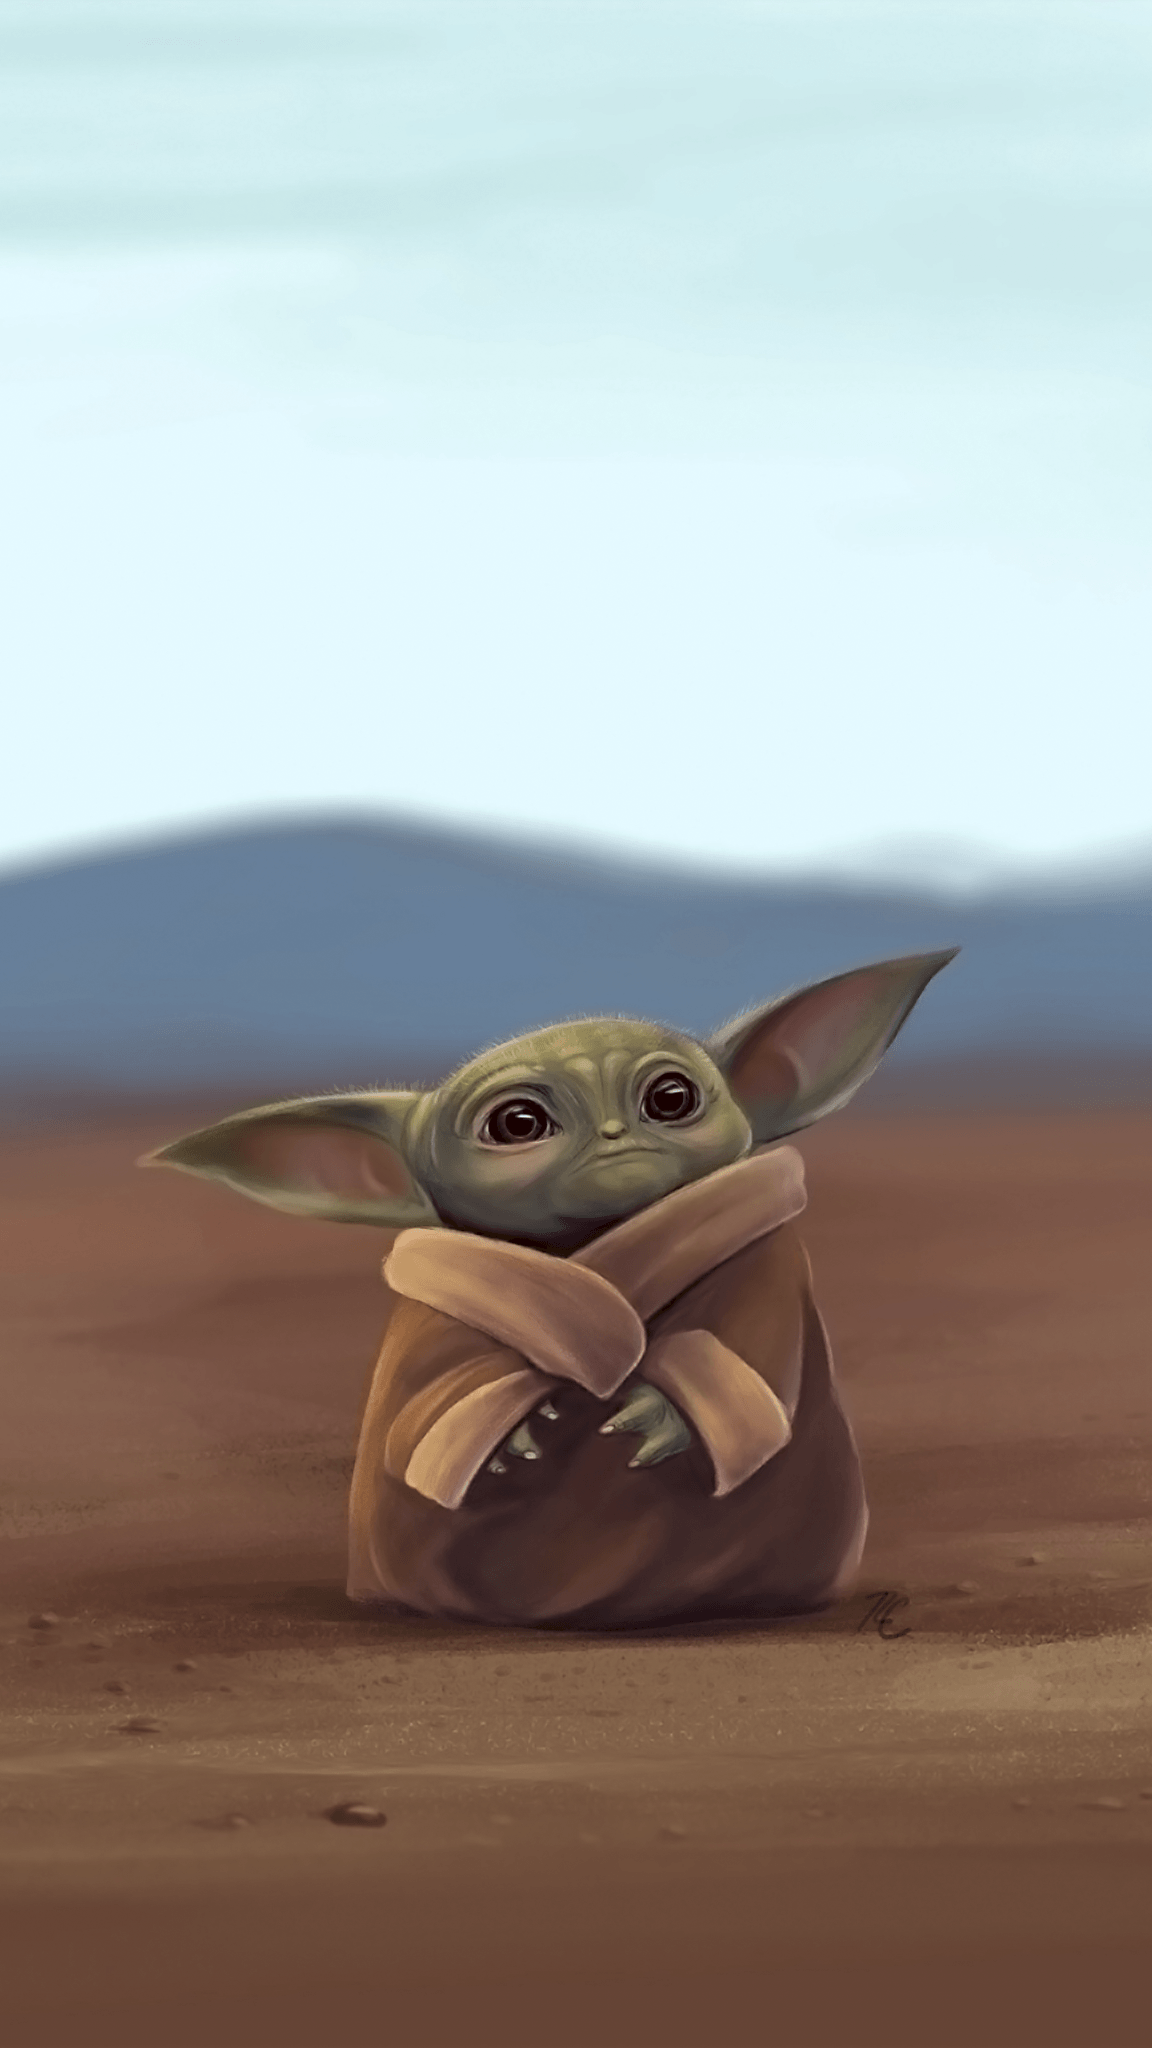 Baby Yoda Cute Wallpapers - Wallpaper Cave